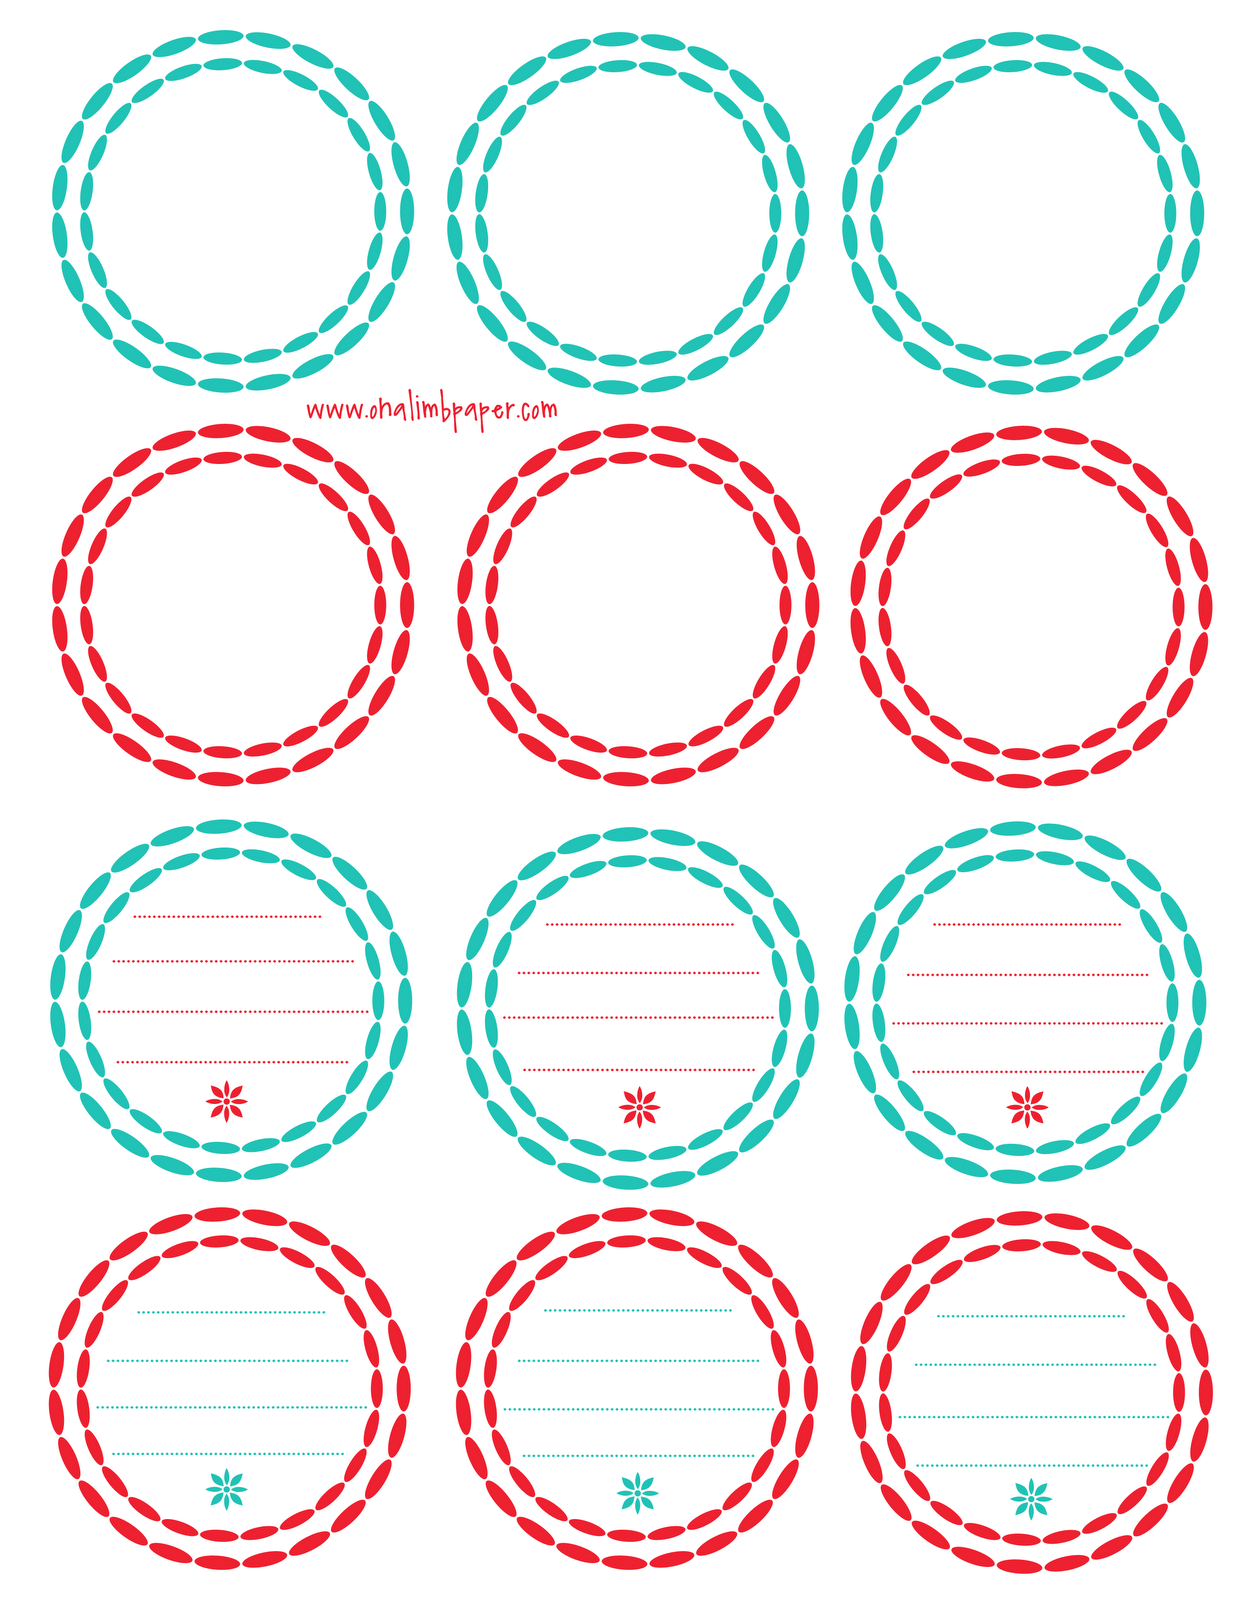 7 best images of round blank printable gift tags free